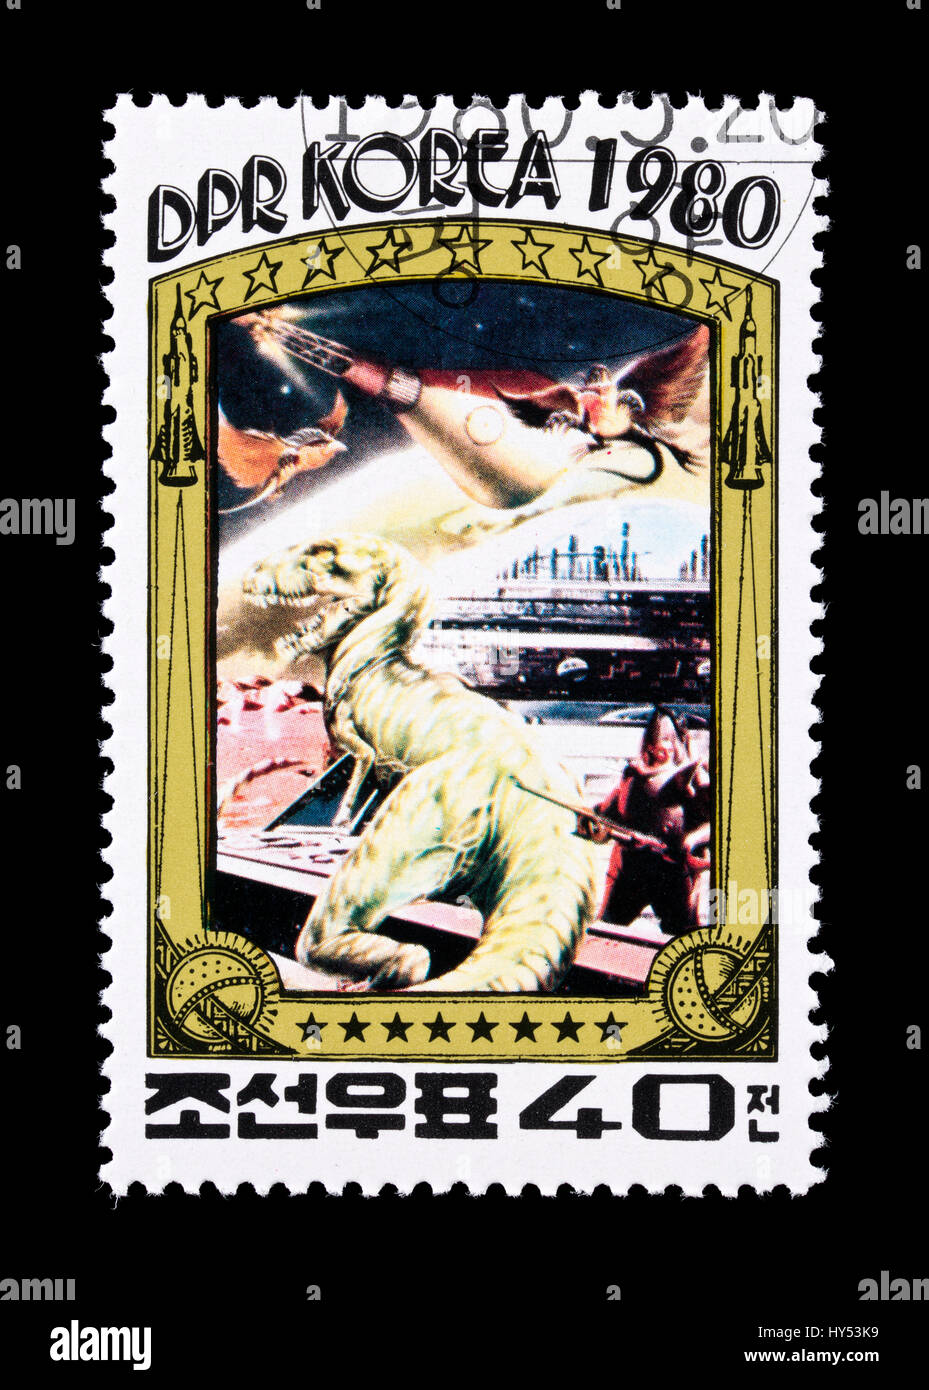 Postage stamp from North Korea depicting spaces and dinosaurs. - Stock Image